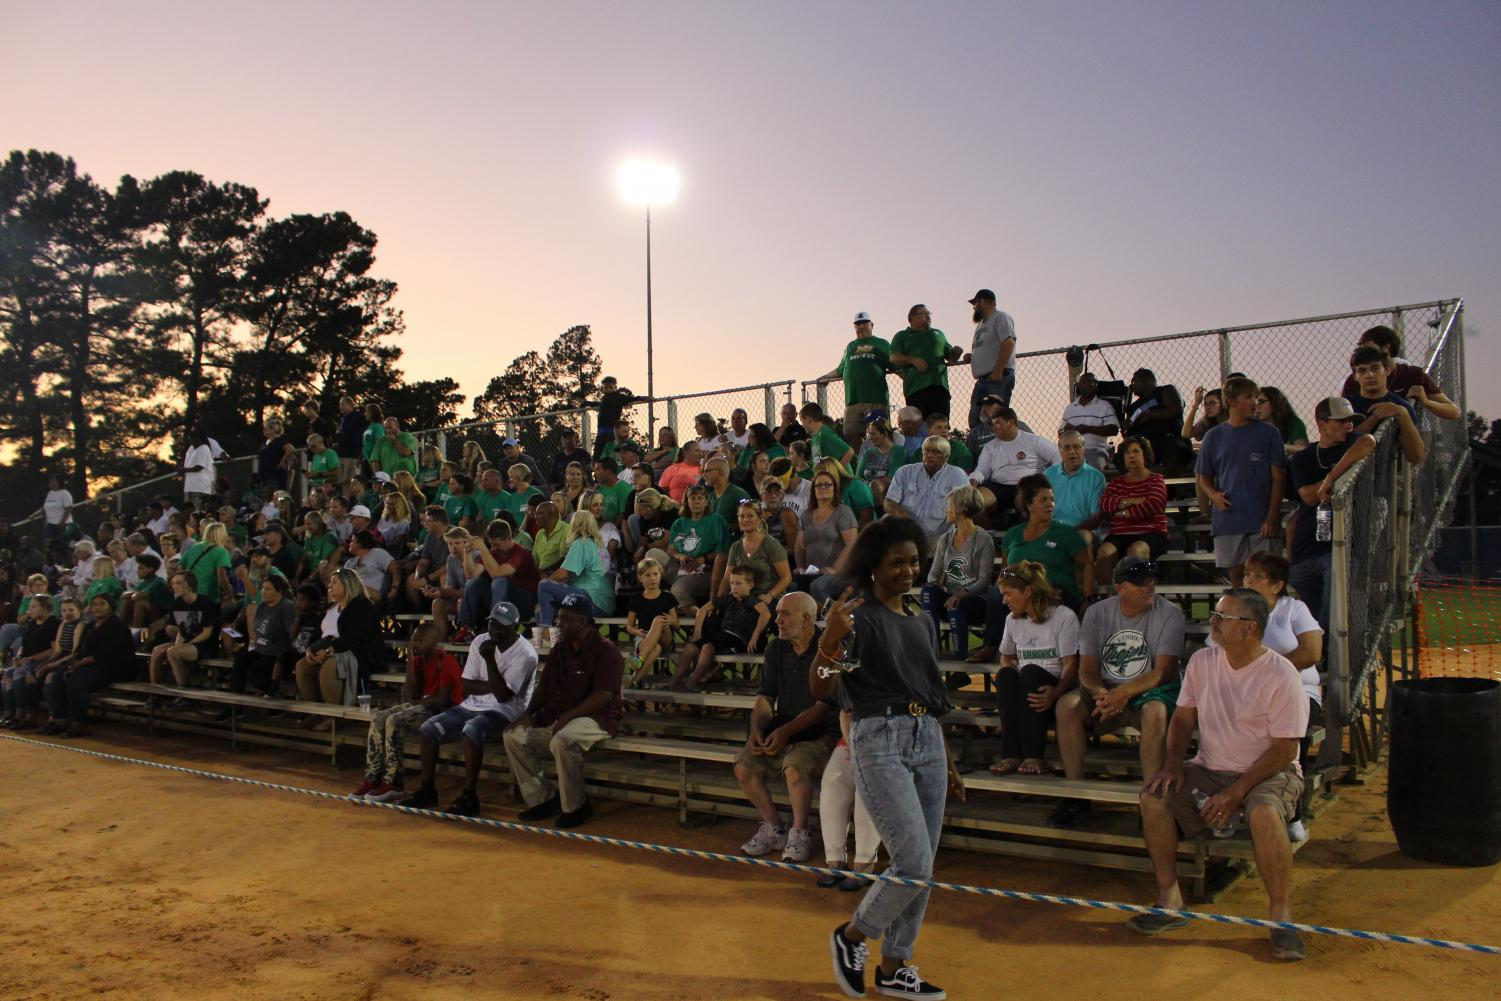 The+stands+on+the+Trojan+side+are+packed+as+the+game+reaches+halftime.